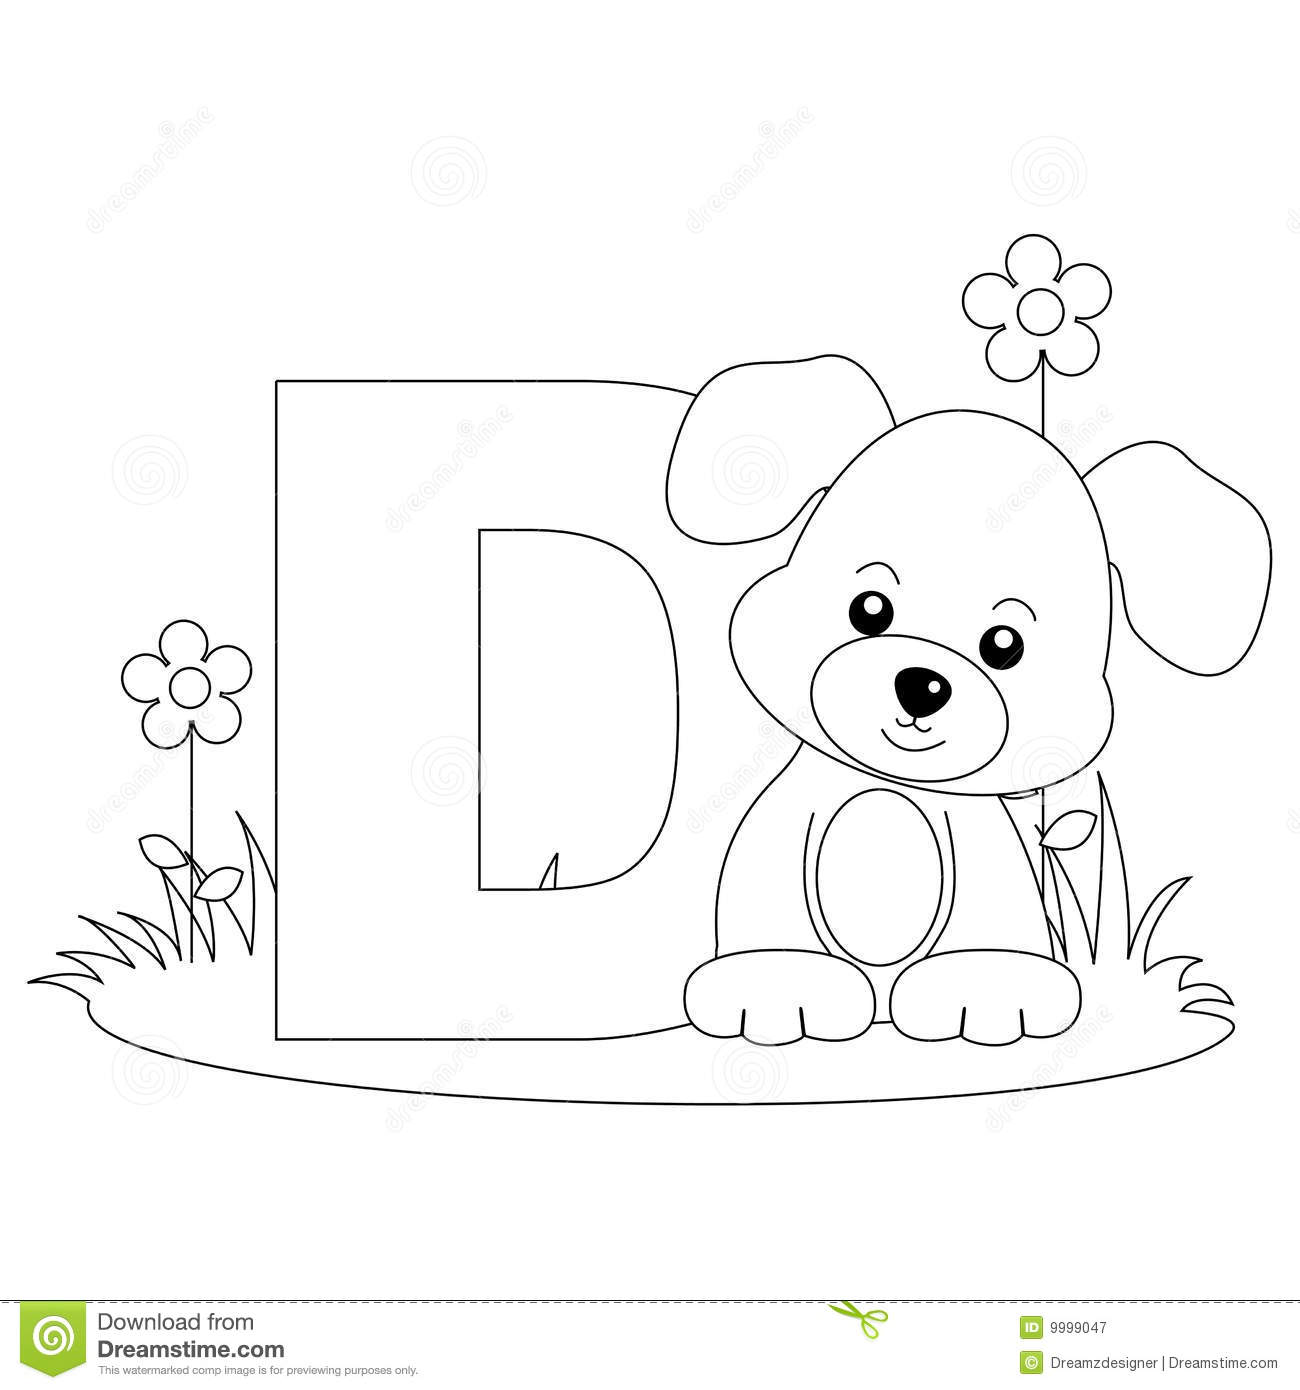 Royalty Free Stock Photo Download Animal Alphabet D Coloring Page